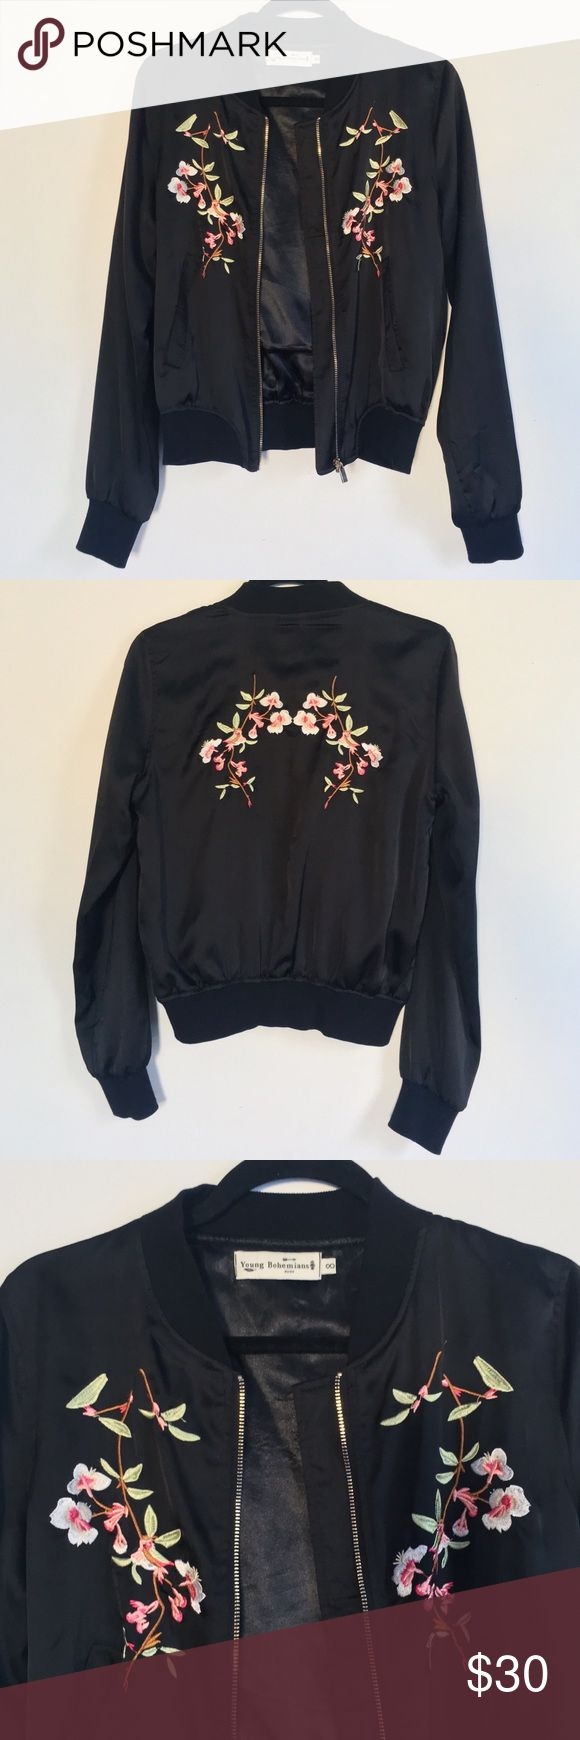 Bomber Jacket with Delicate Embroidery Young Bohemians Trophy Bomber Jacket with Delicate Embroidery in BLACK ASOS Jackets & Coats